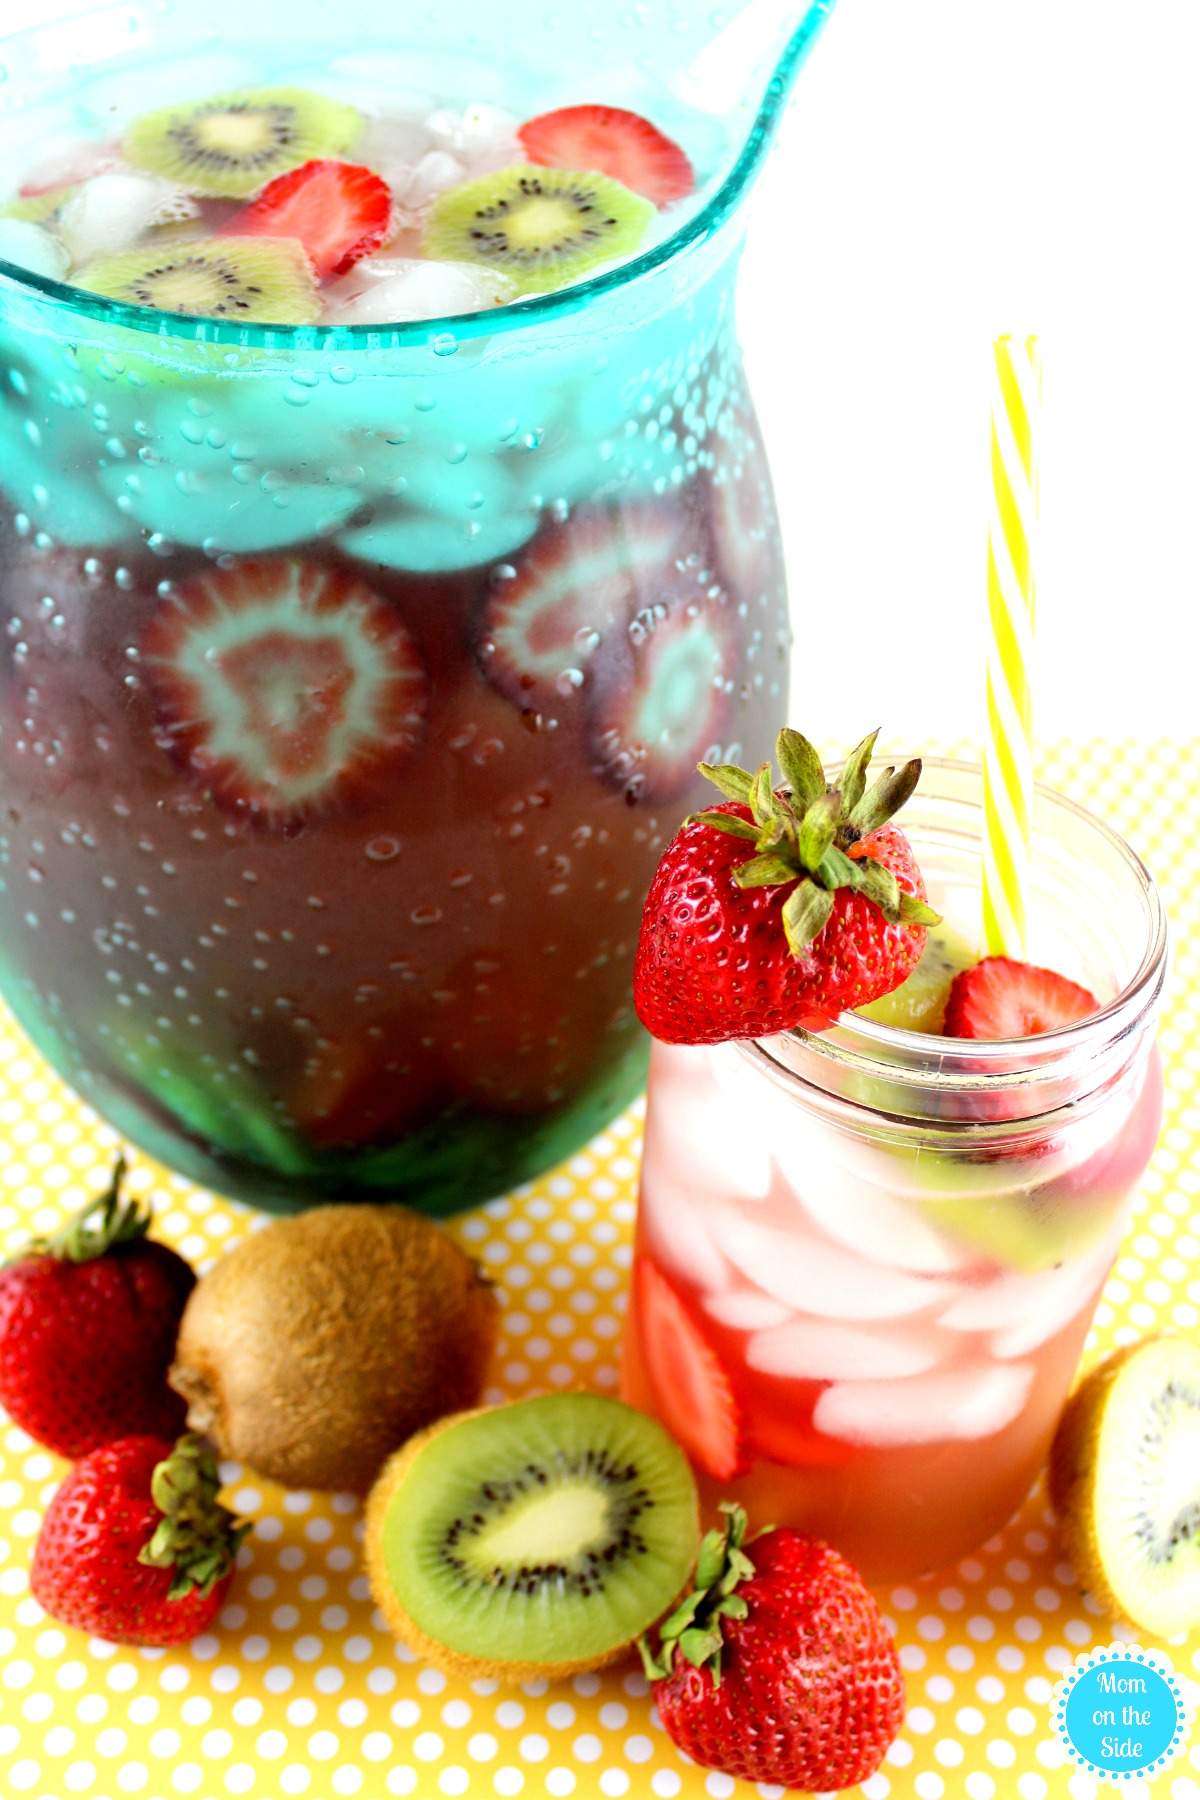 Easy Sangria Recipe for Strawberry Kiwi Sangria